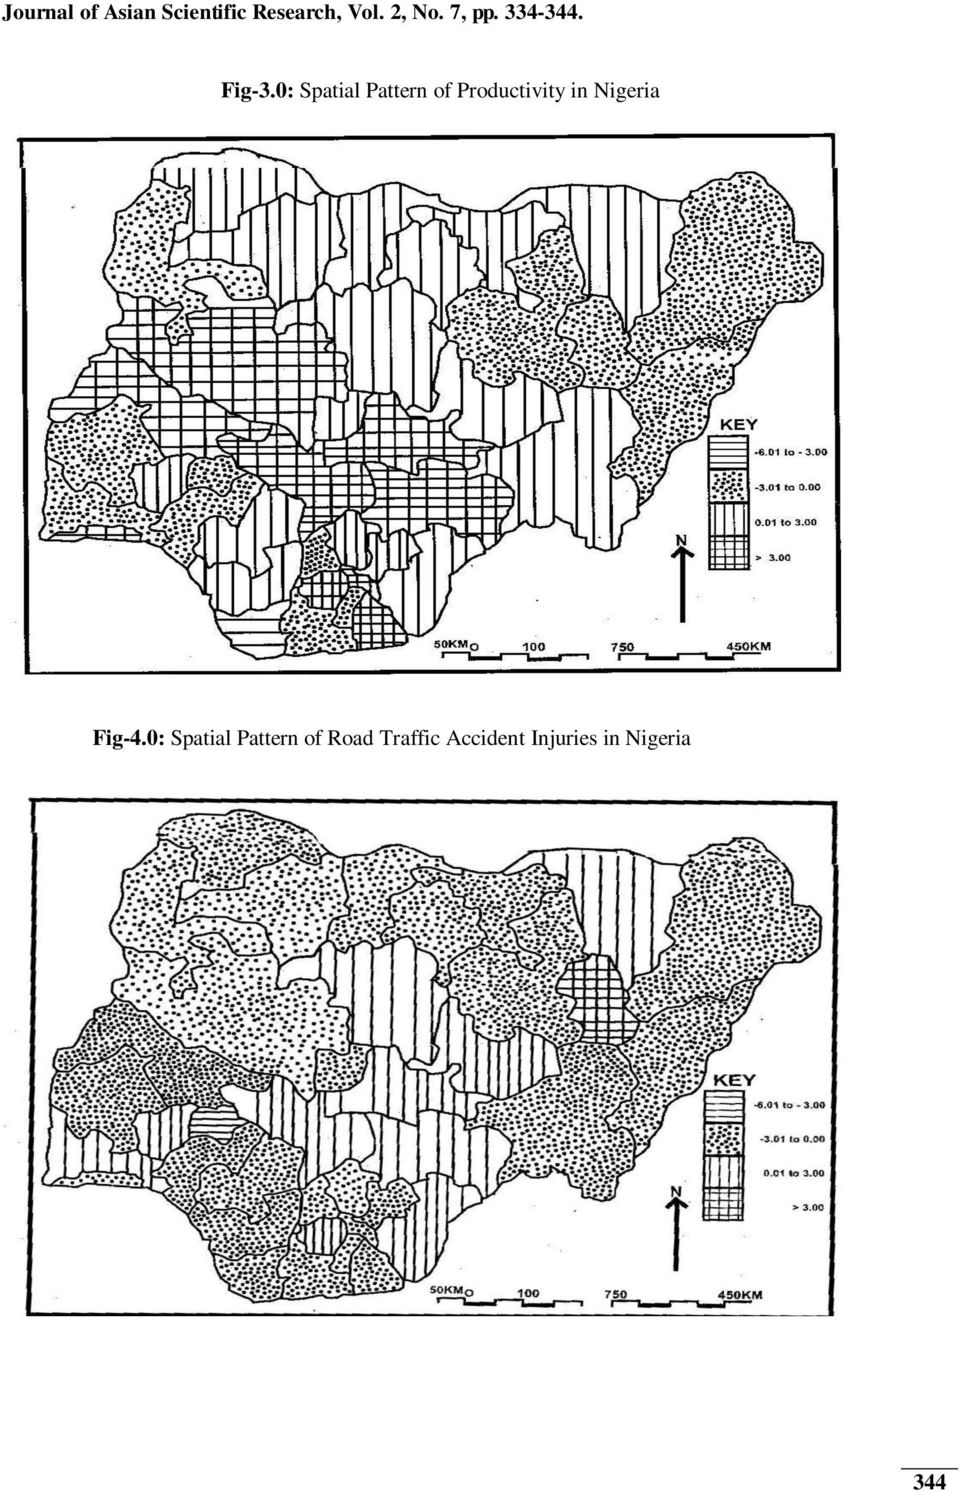 0: Spatial Pattern of Productivity in Nigeria